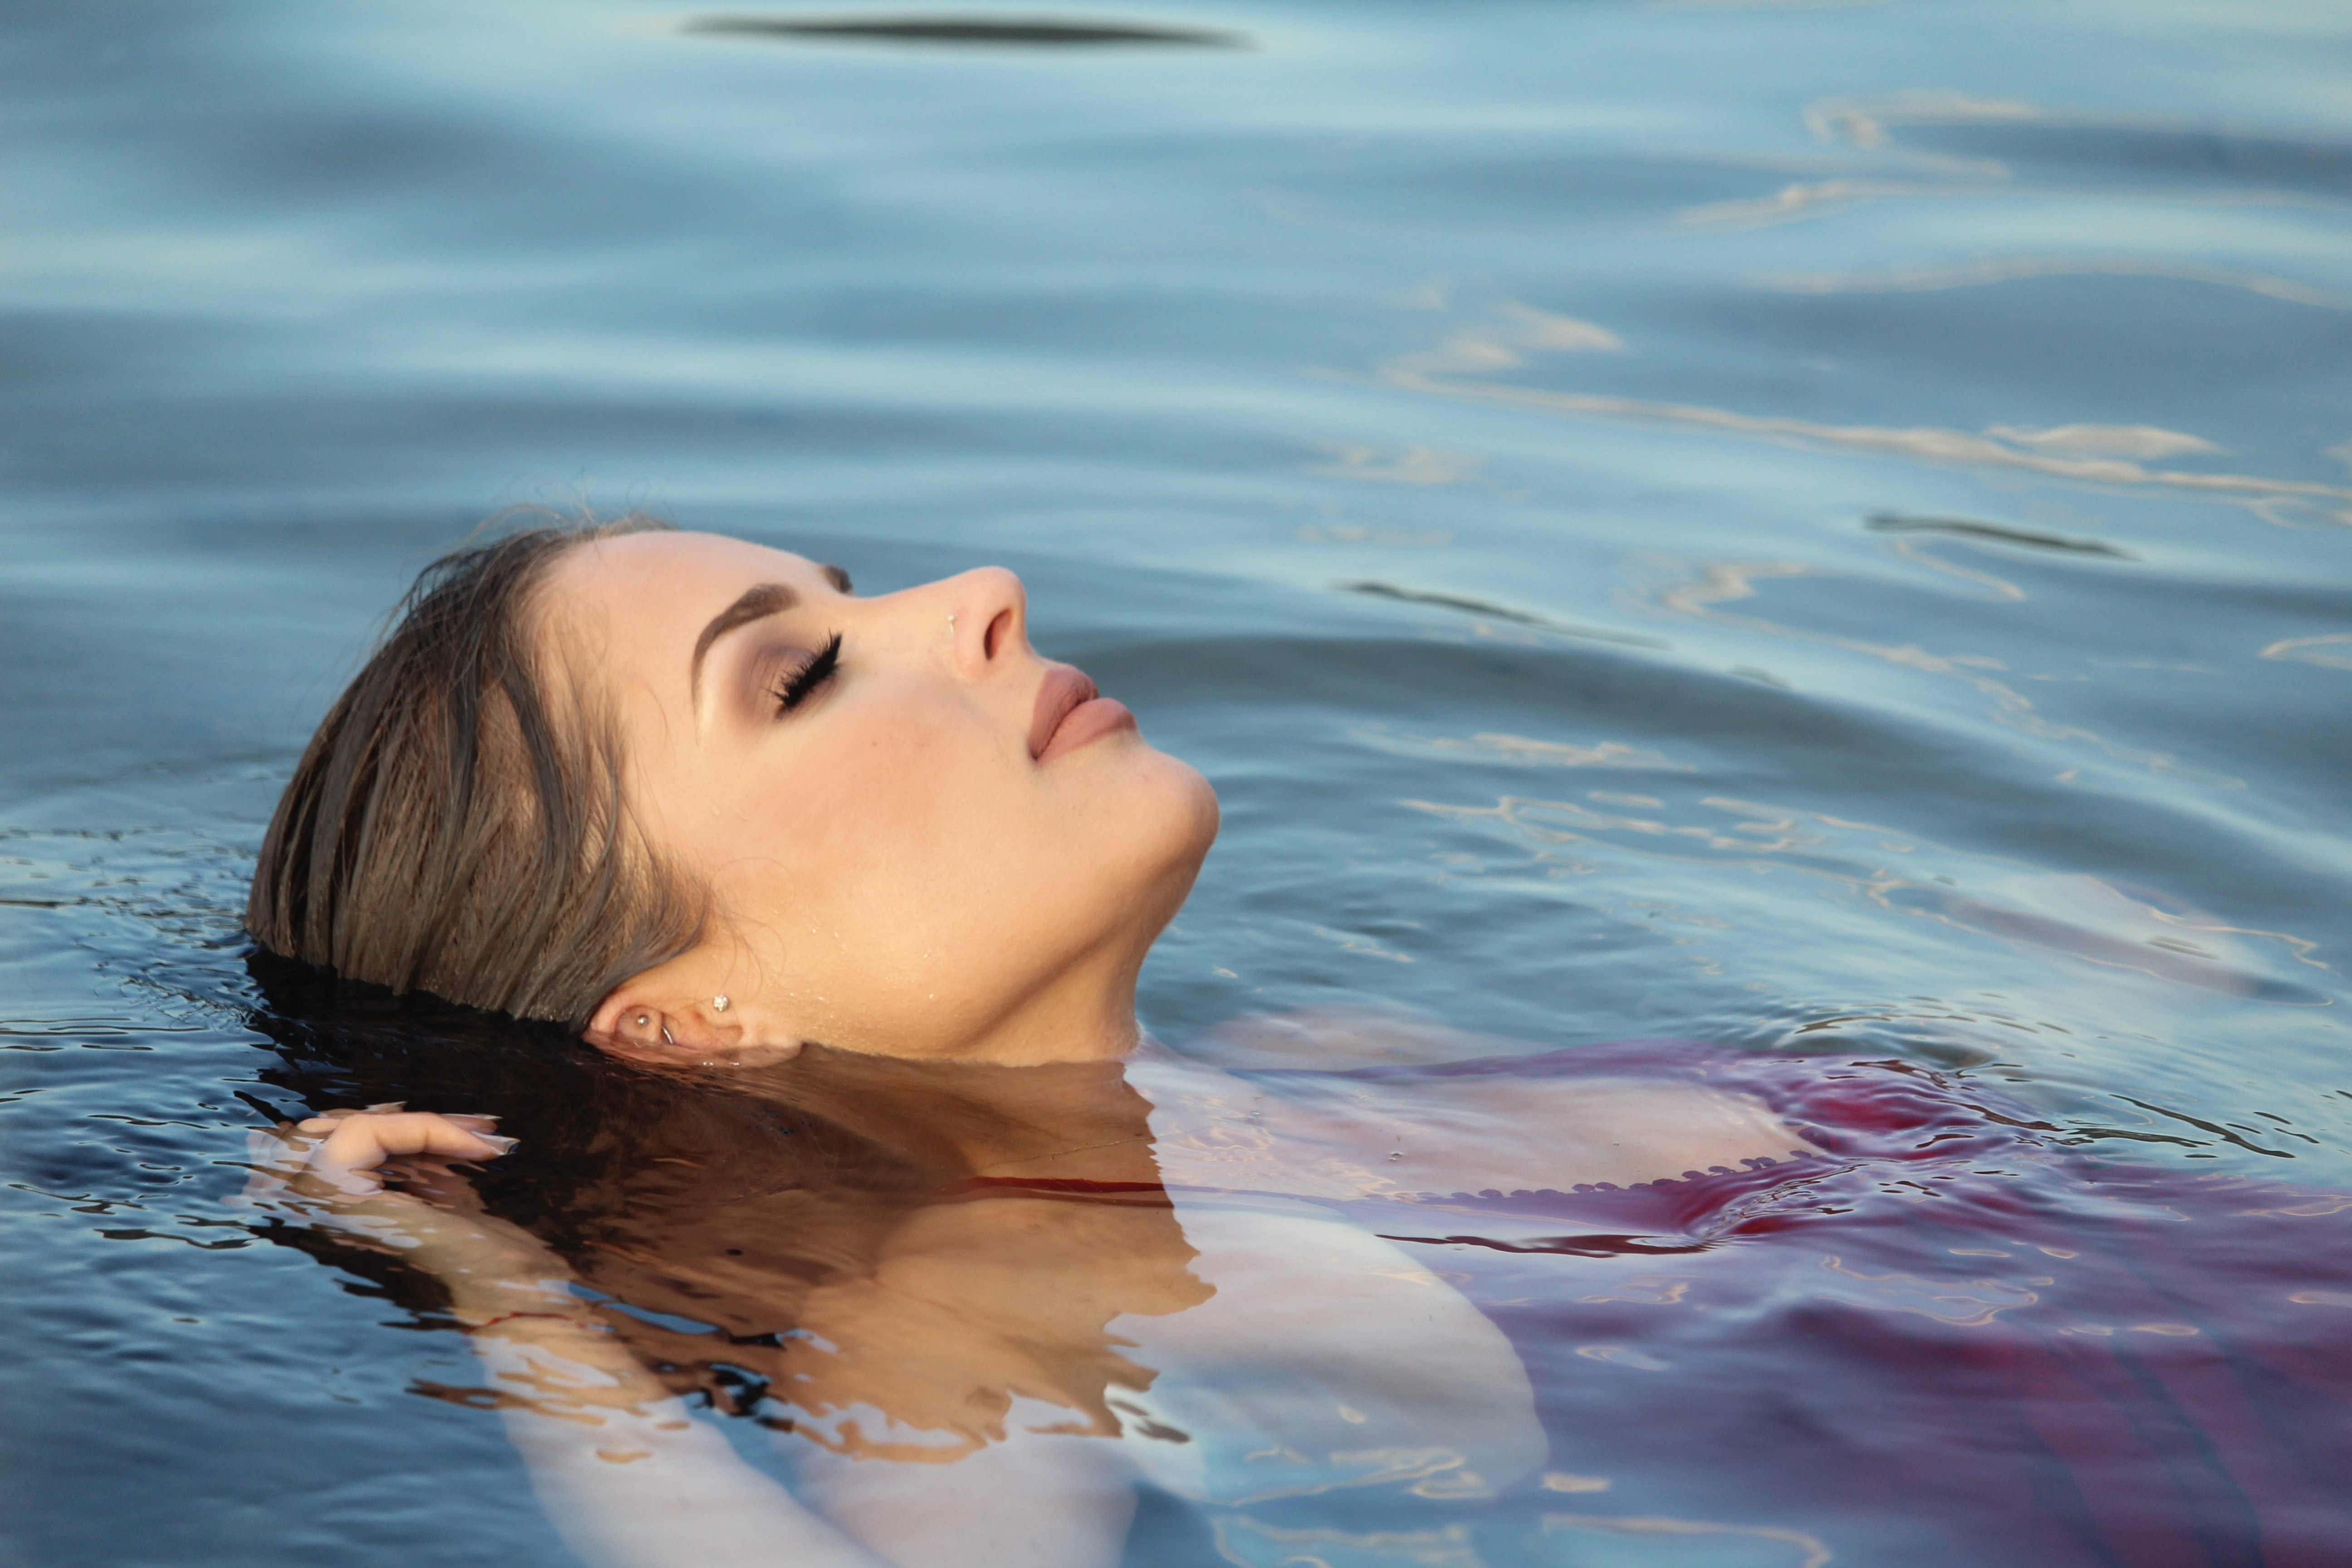 woman in maroon top floating on water during daytime